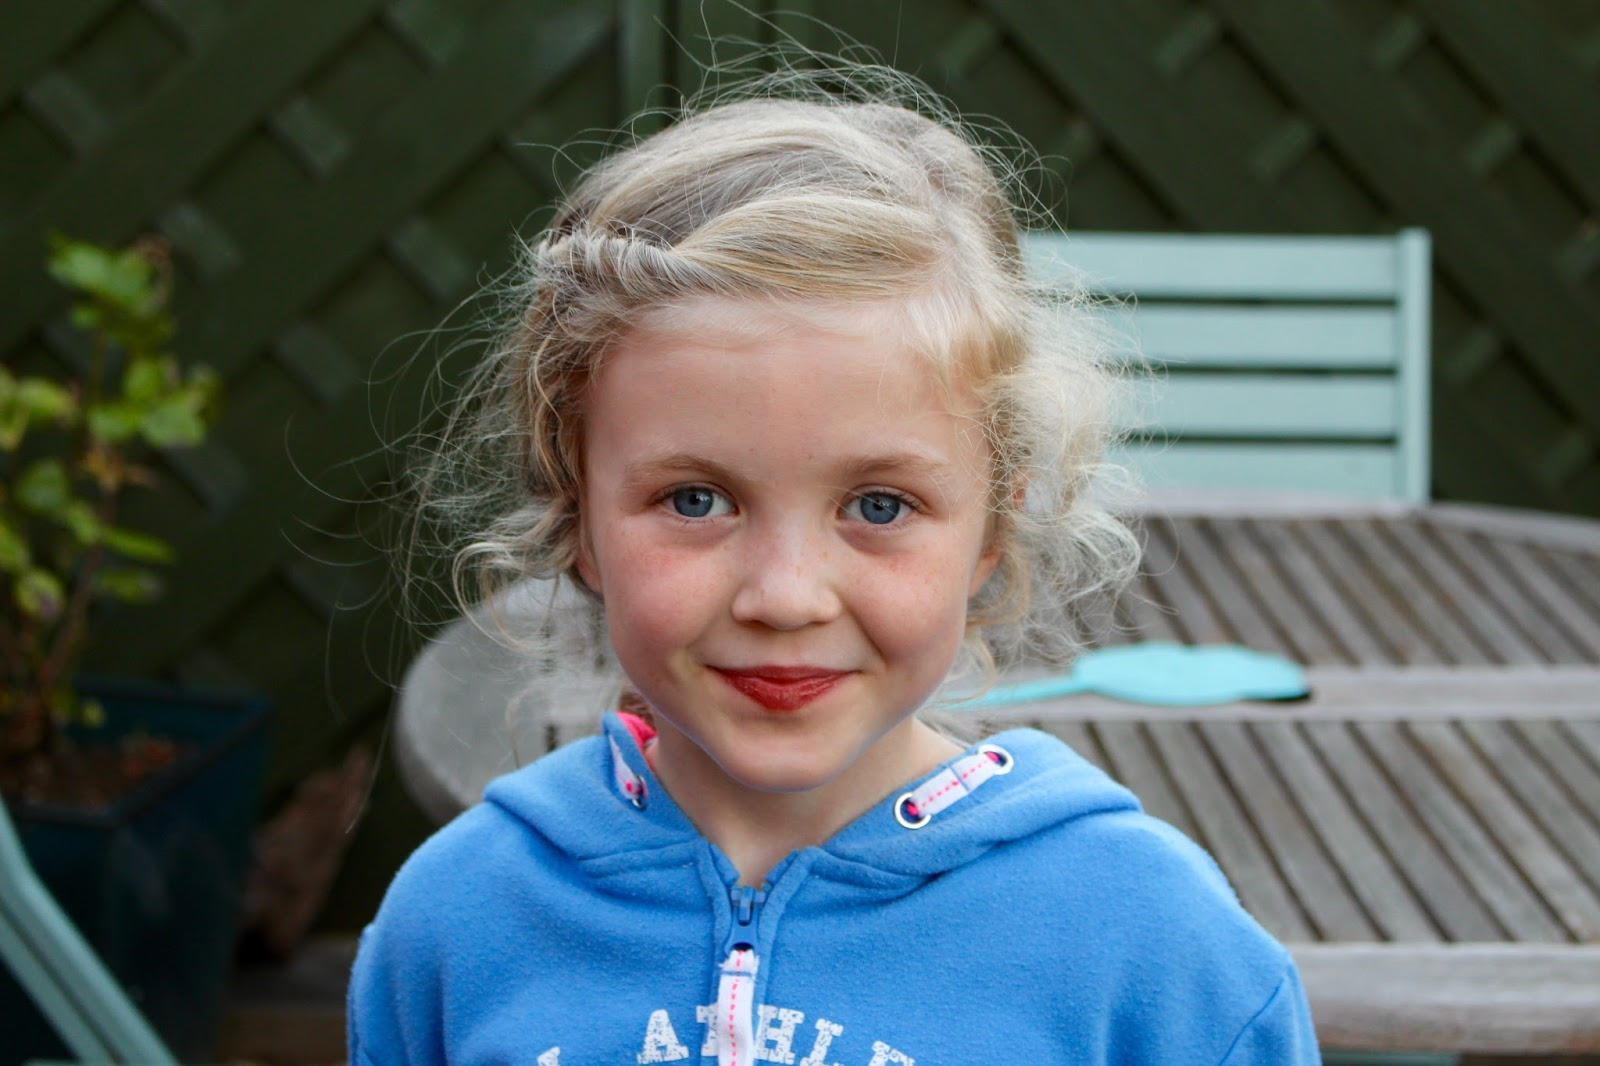 Just In Case You Thought I Had Photographed A Real Ghost, Here She Is A  Normal Little Girl After All!